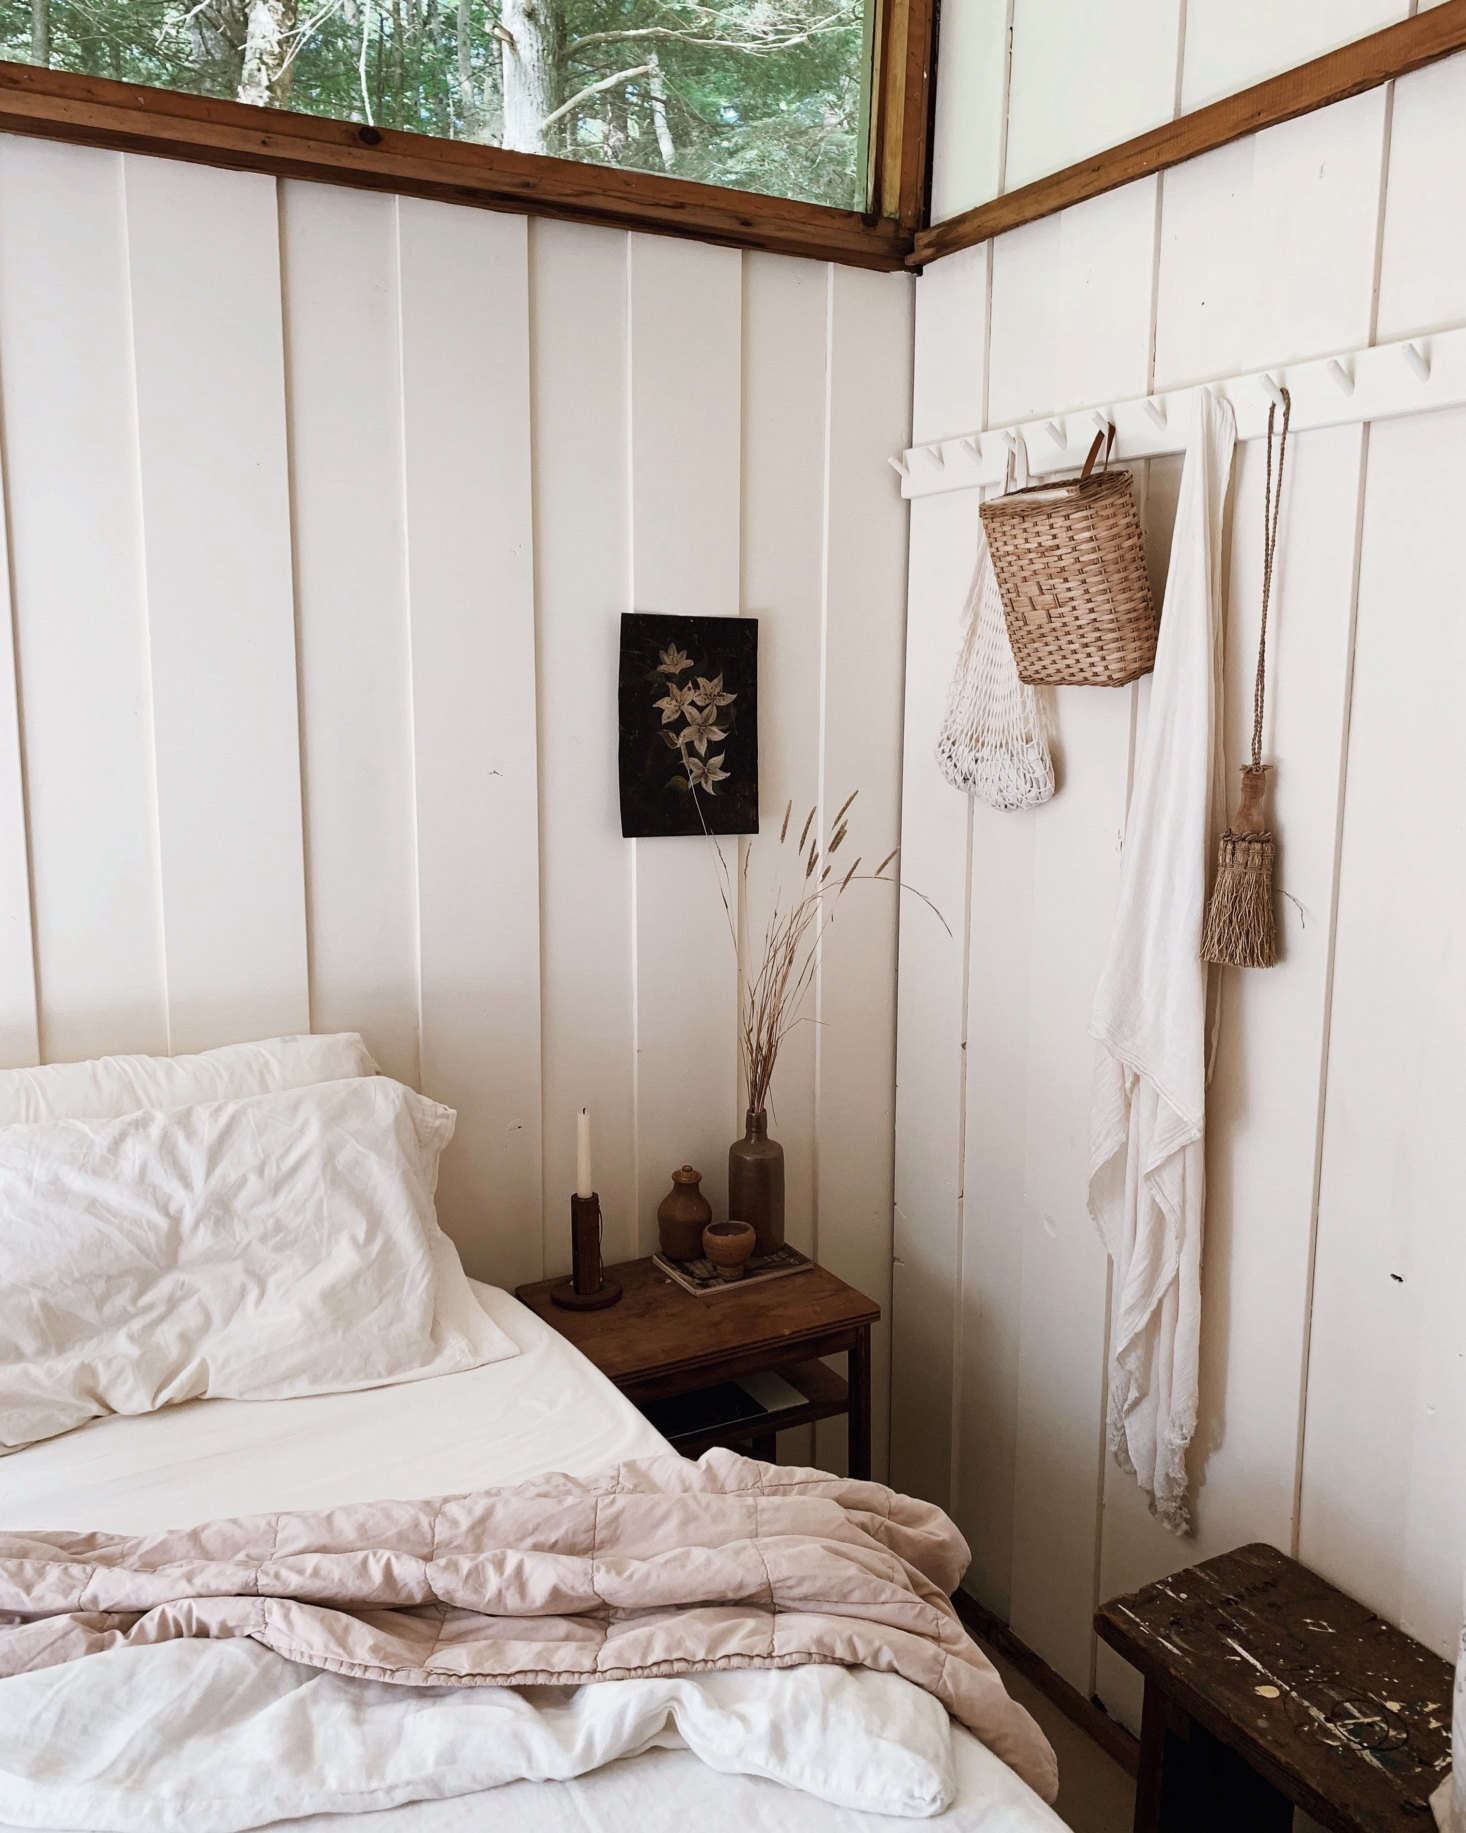 The bedroom is set for an off-the-grid weekend away, with bedside candlesticks collected from a nearby antique shop and a peg rail from The Foundry Home Goods.